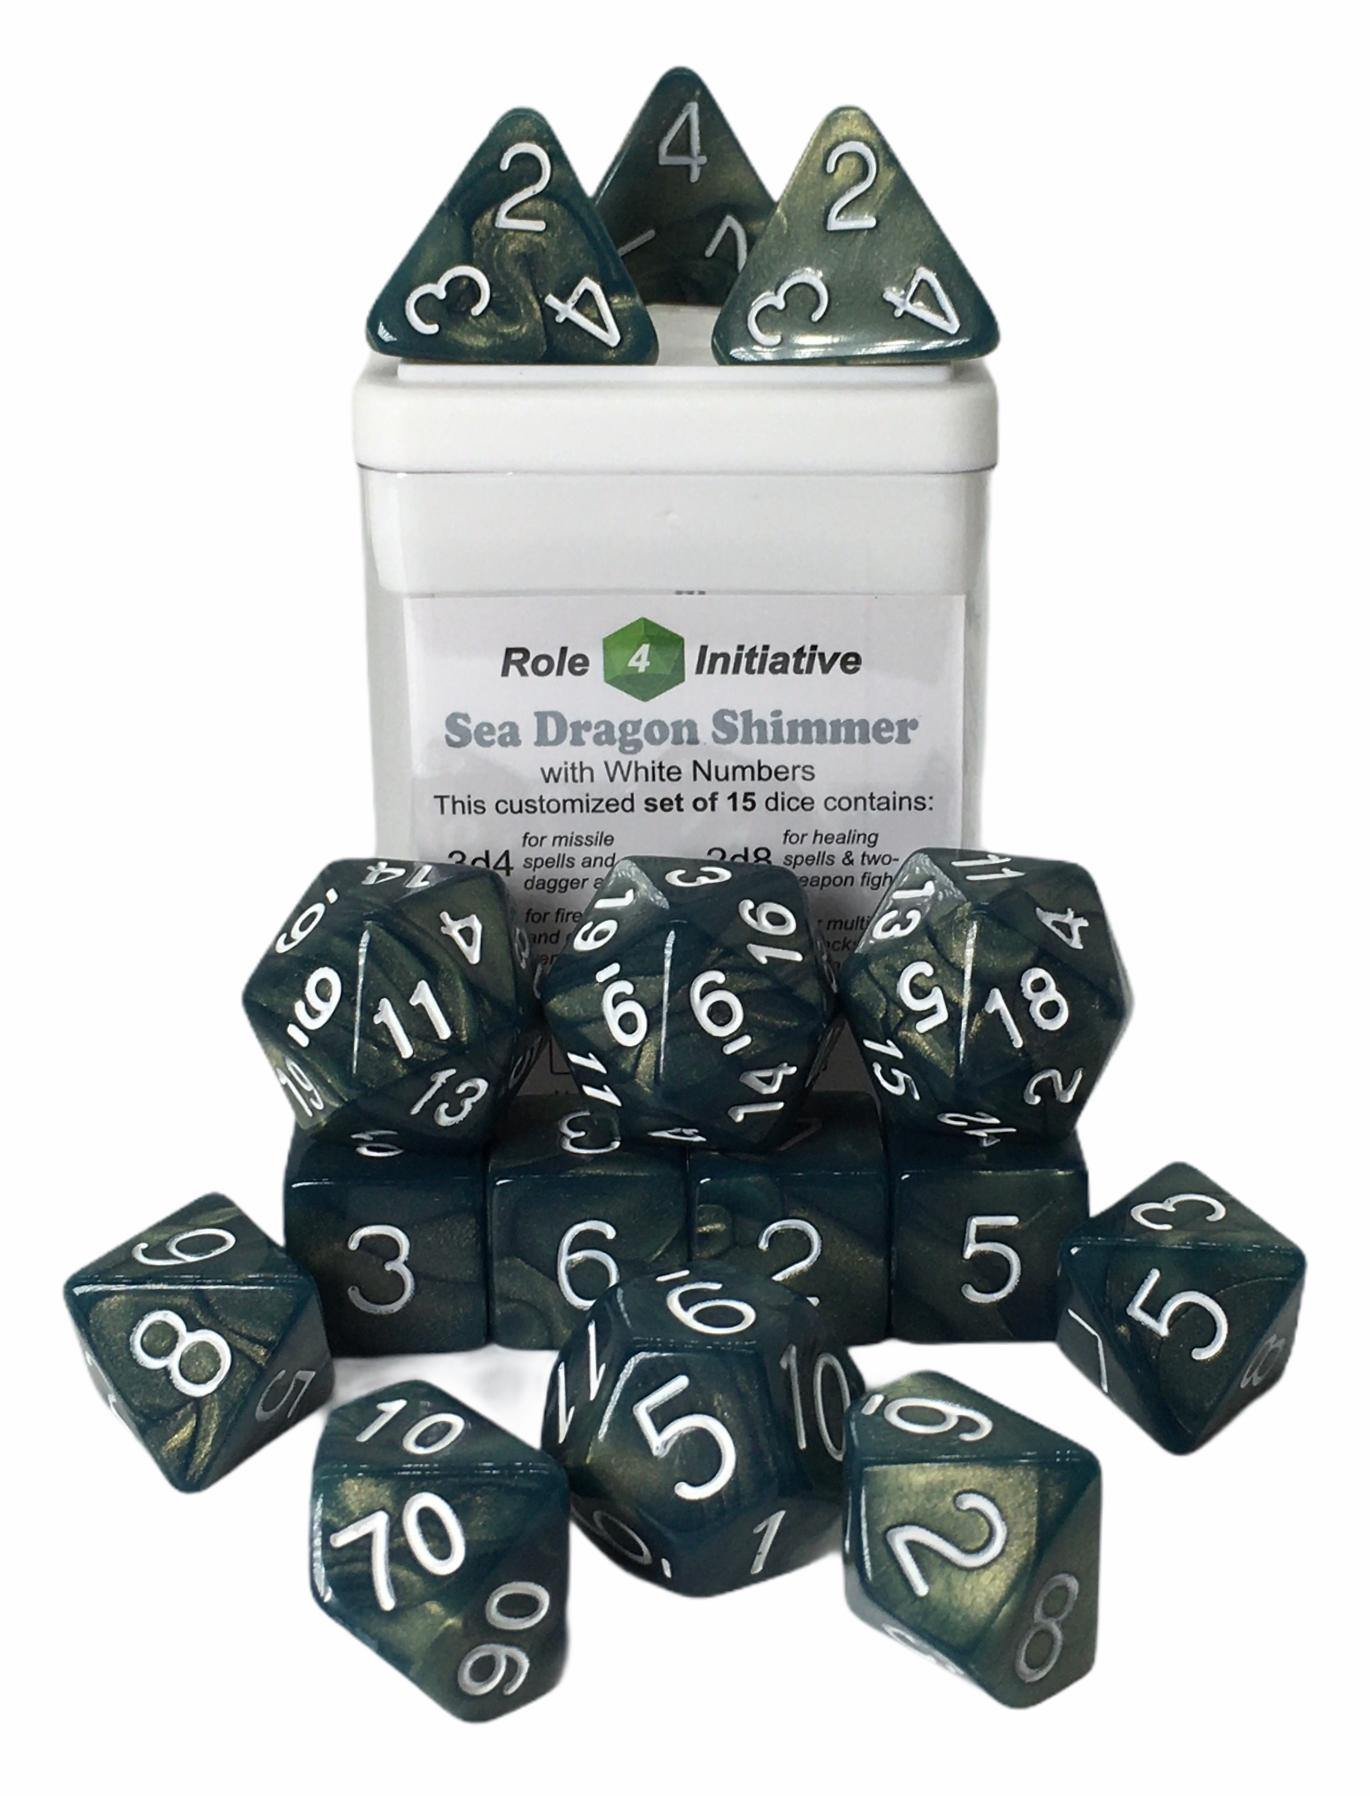 Set of 15 large high-visibility game dice: Sea Dragon Shimmer w/ White Numbers